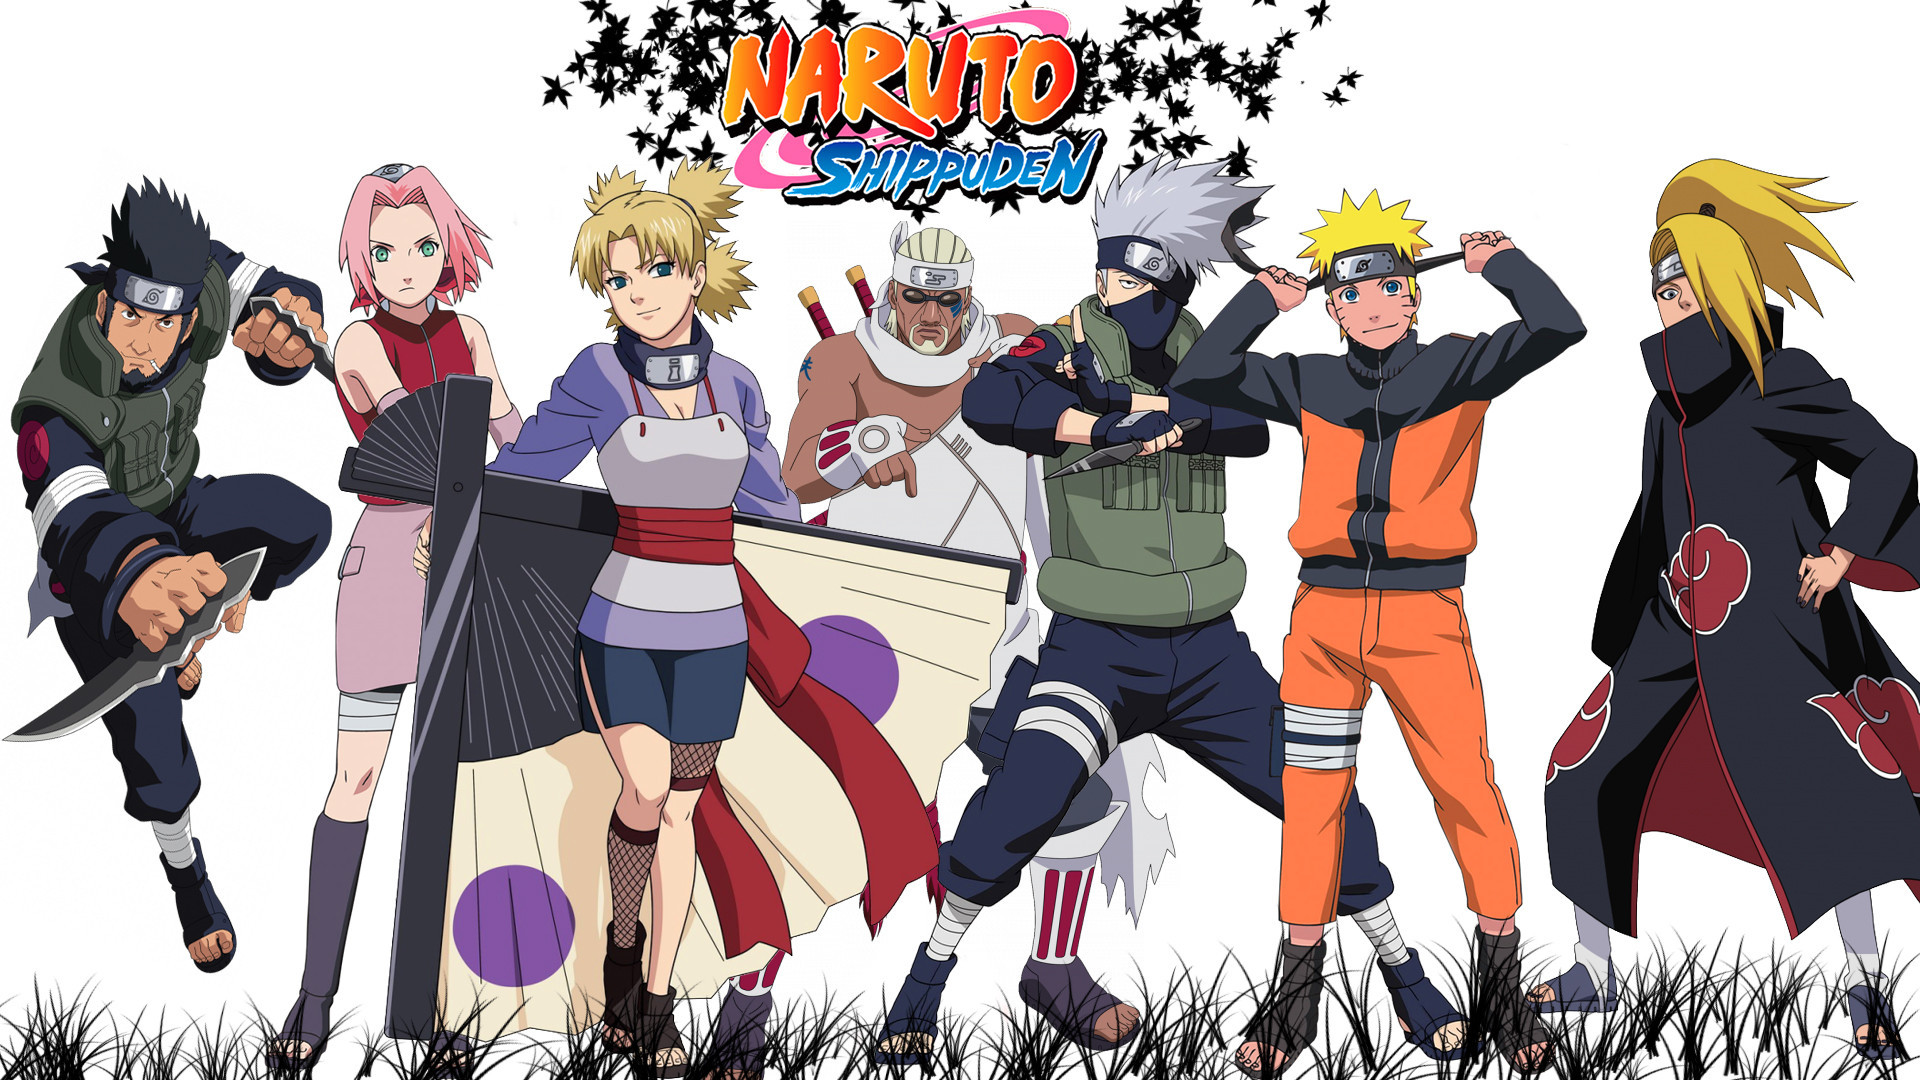 Naruto characters wallpapers 1920x1080 naruto shippuden wallpapers hd 2015 voltagebd Image collections